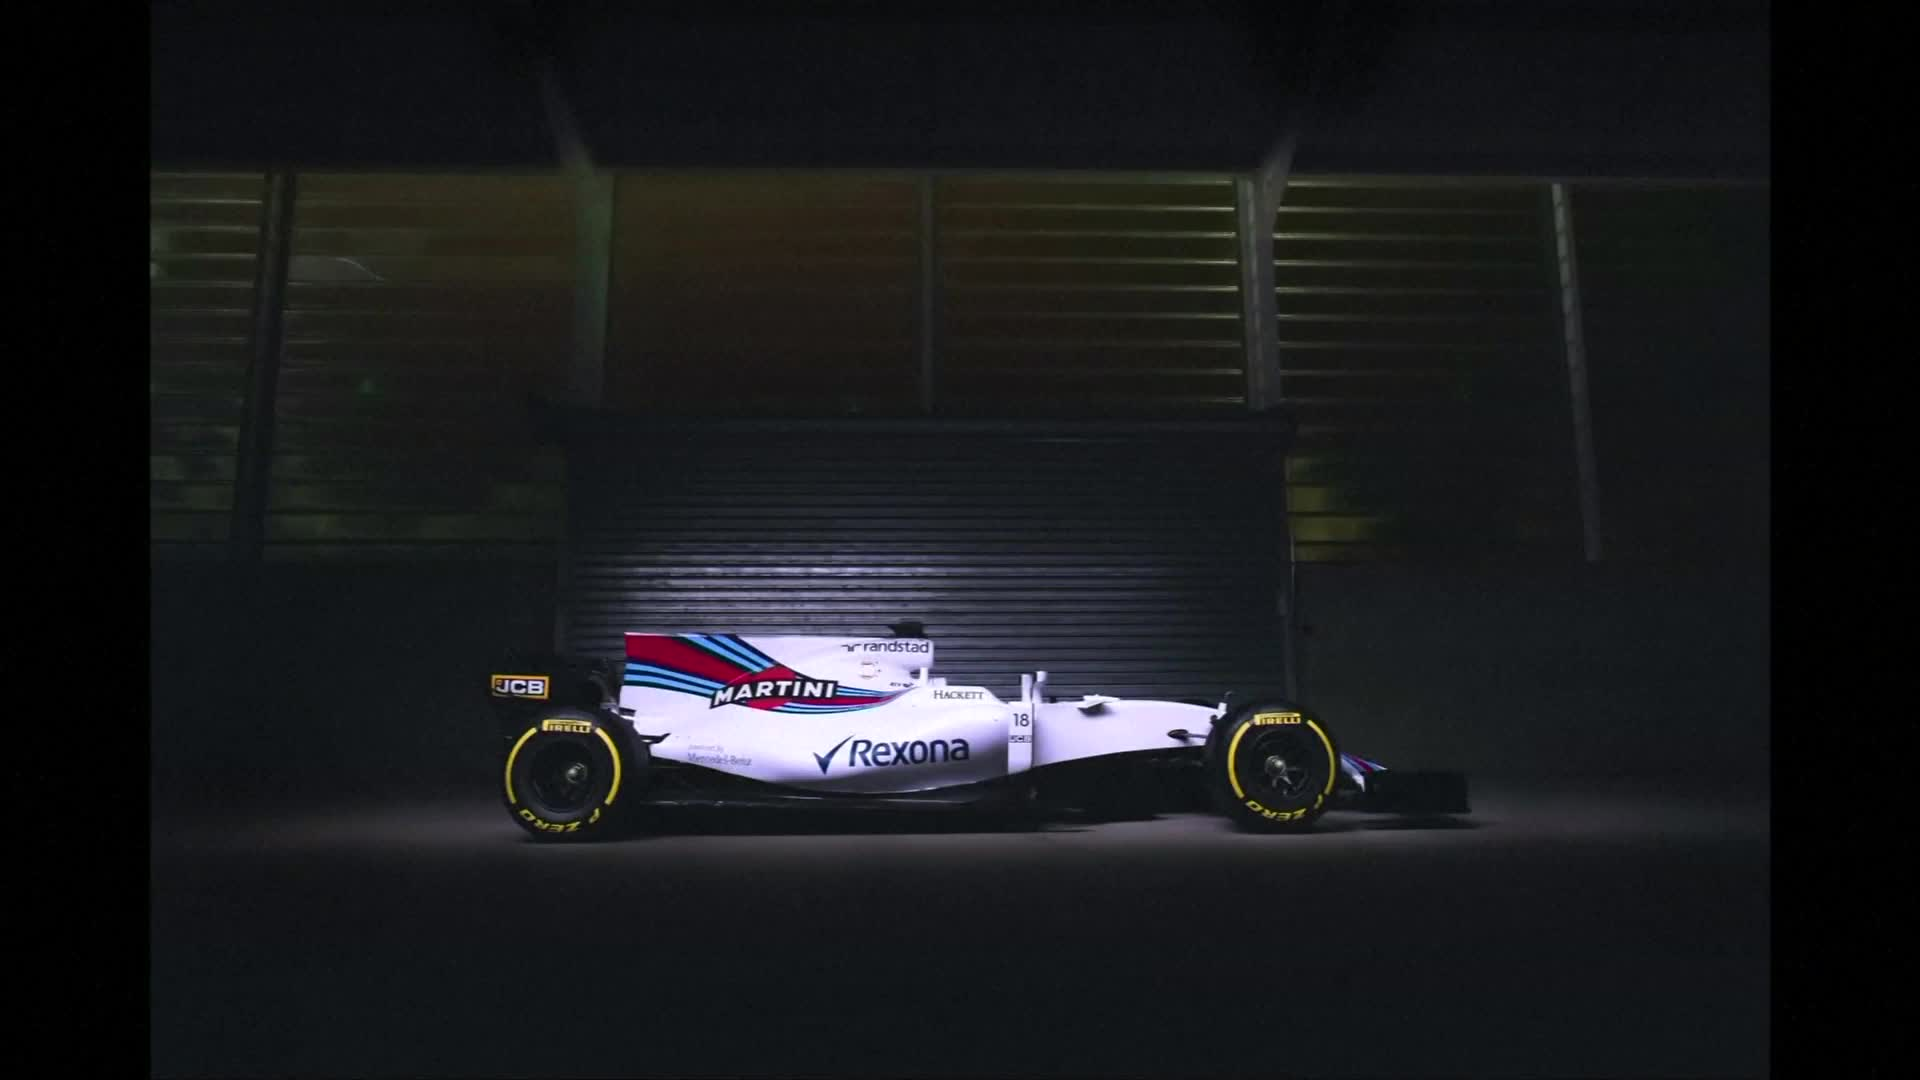 Williams release photographs of their 2017 F1 car